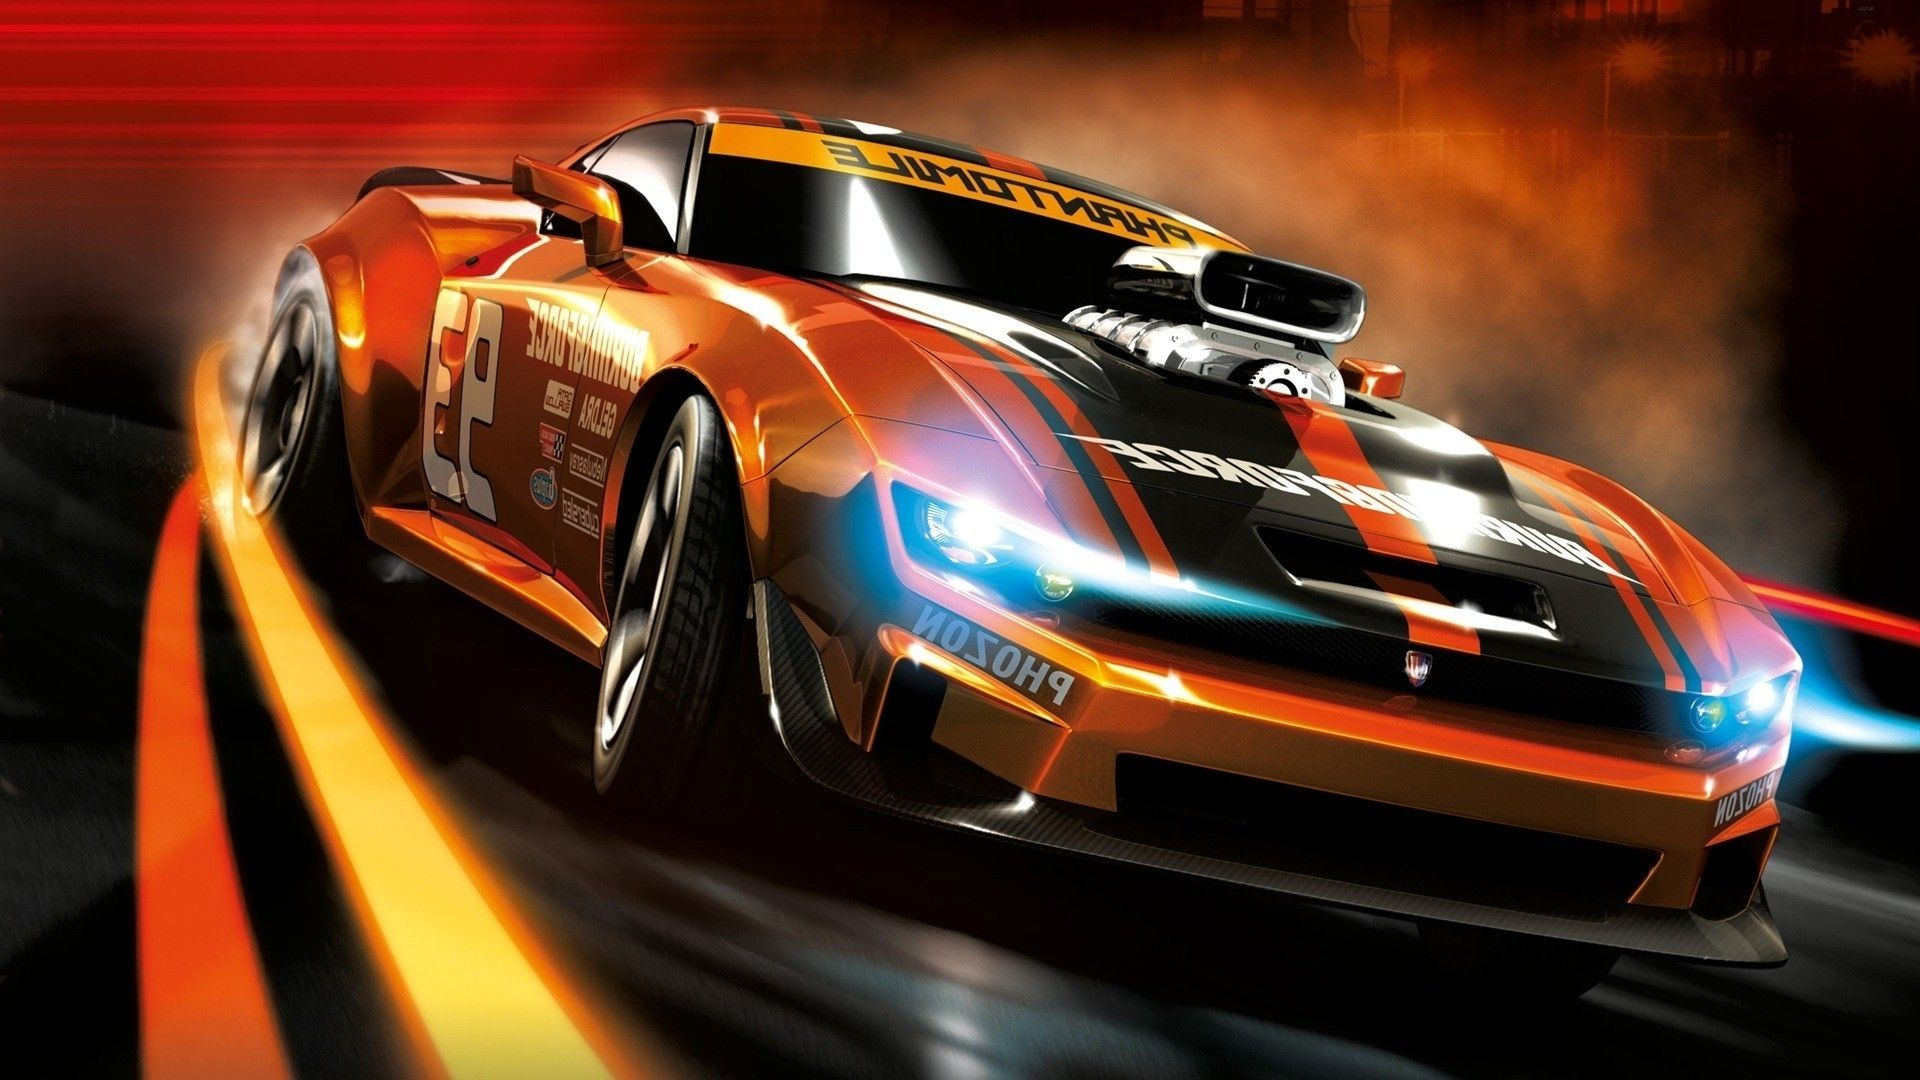 1920x1200 download super fast cool cars hd pictures 4 hd wallpapers full size. Cool Sports Cars Wallpapers Otaku Wallpaper